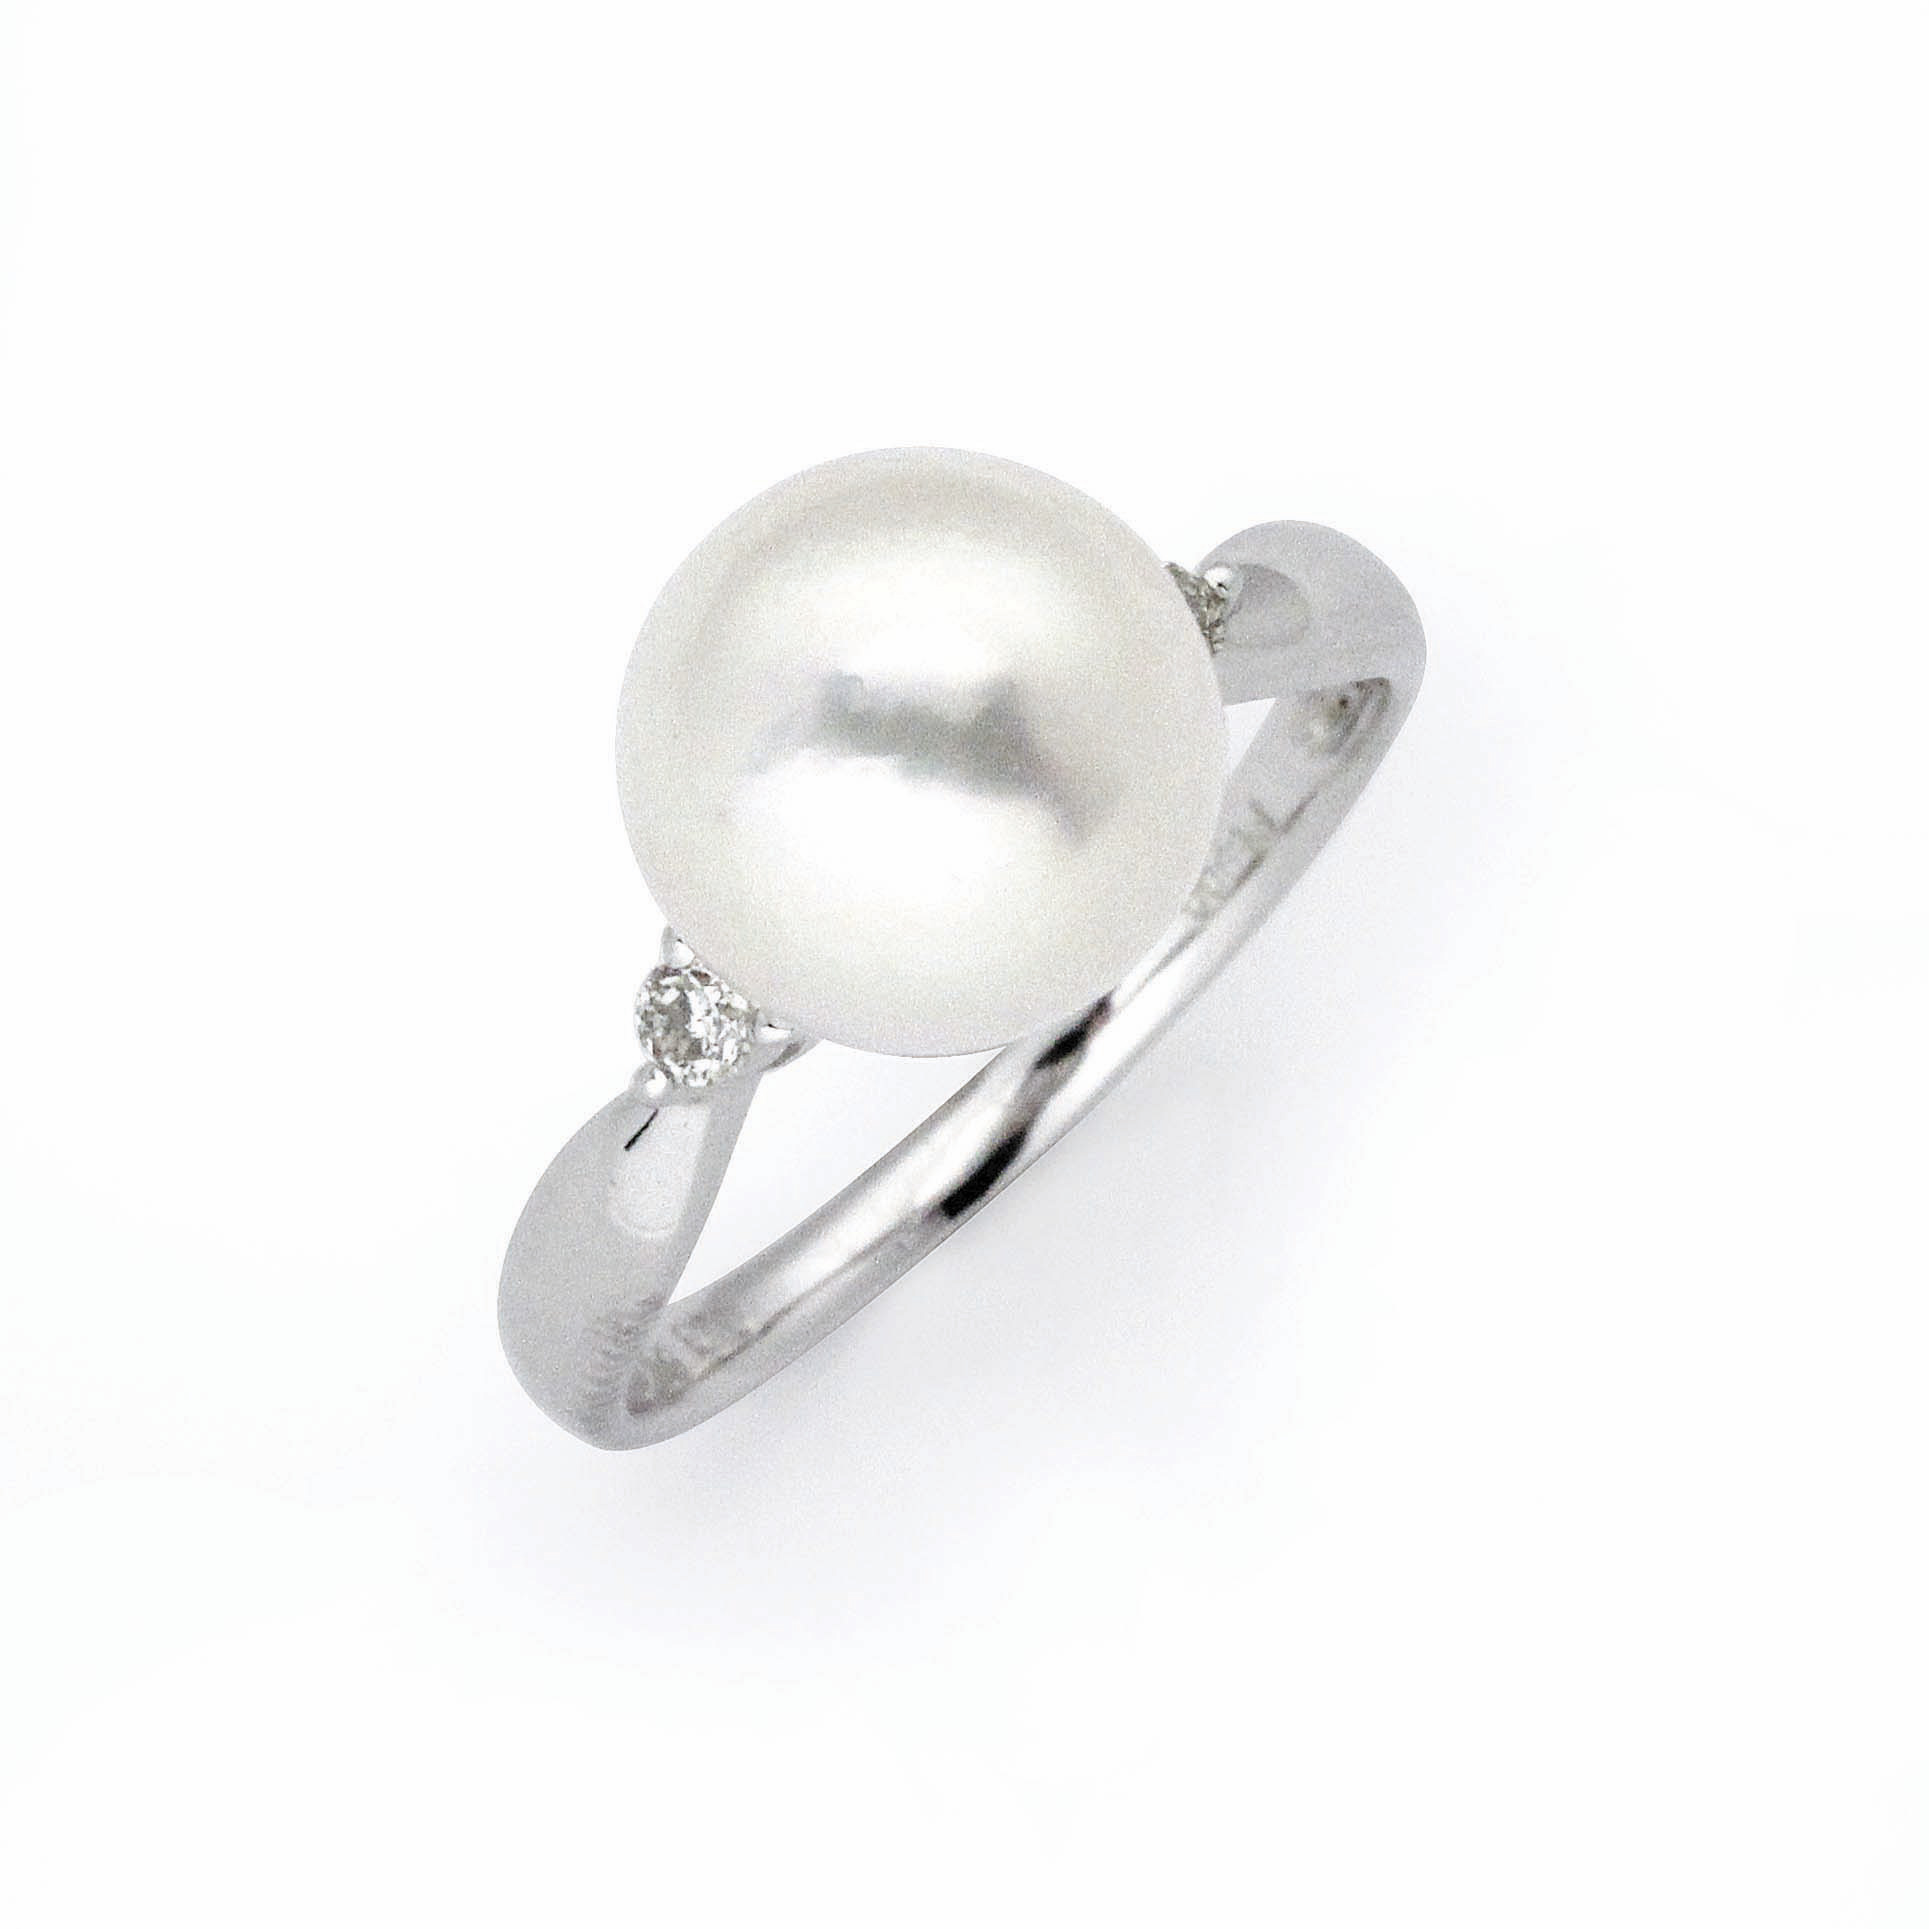 South Sea Pearl Ring 11mm